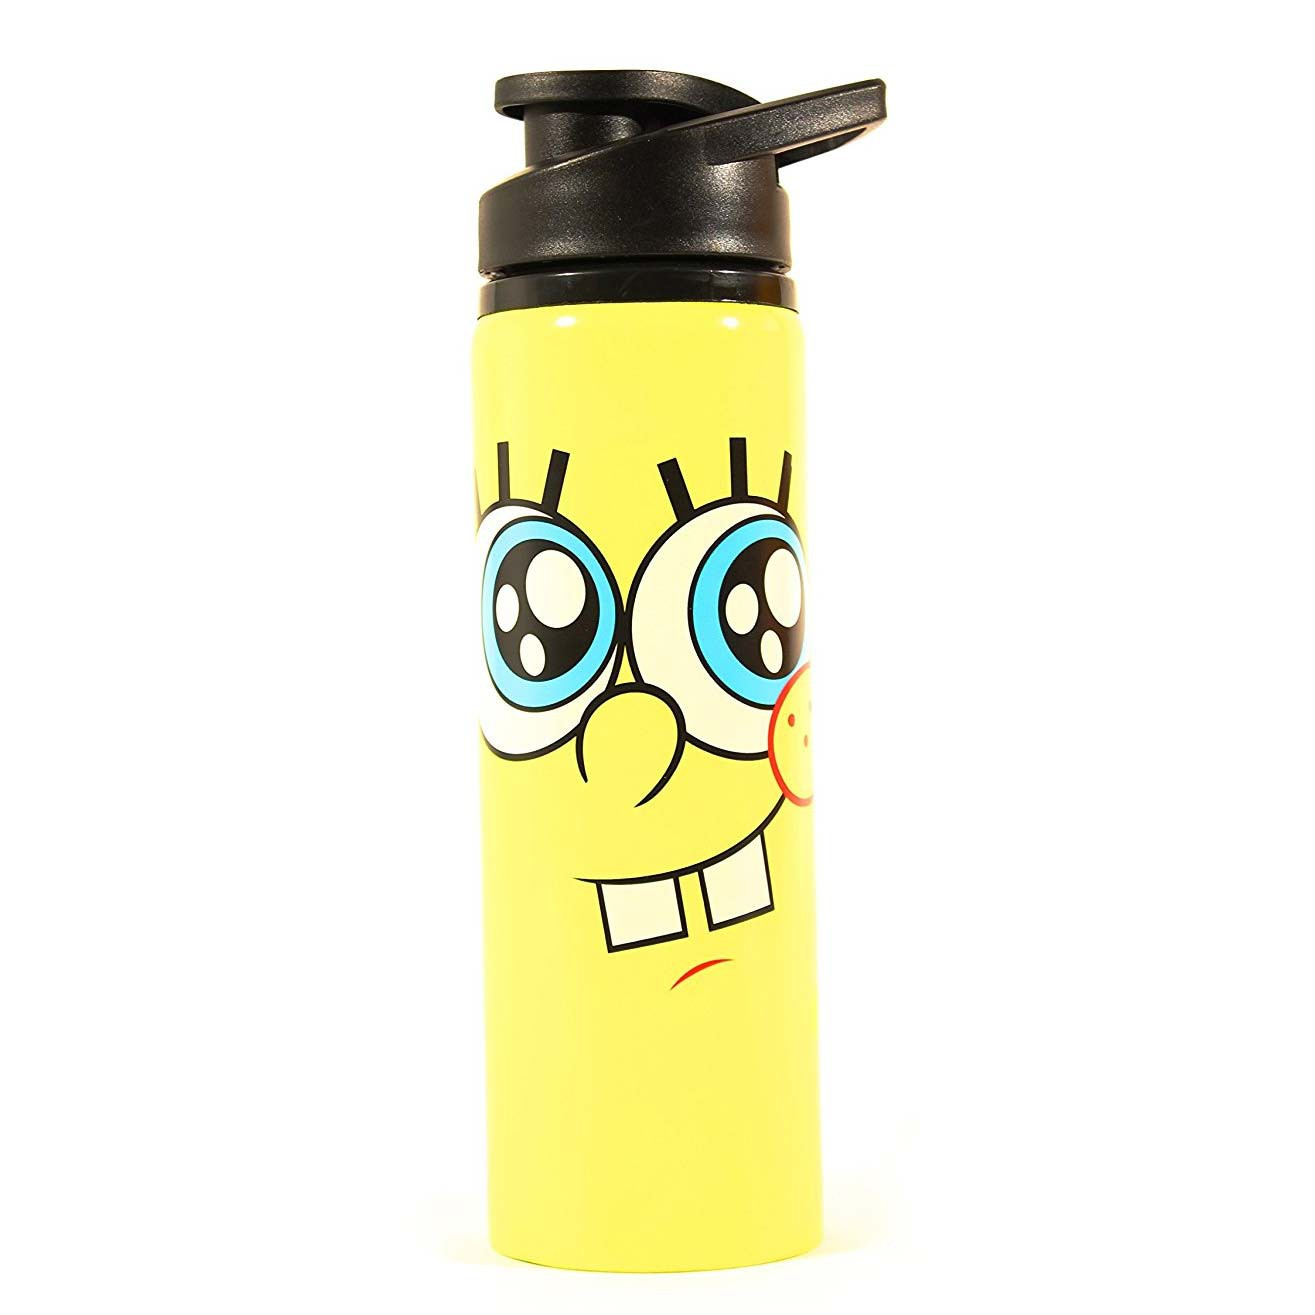 Spongebob Squarepants Stainless Steel 25oz Water Bottle